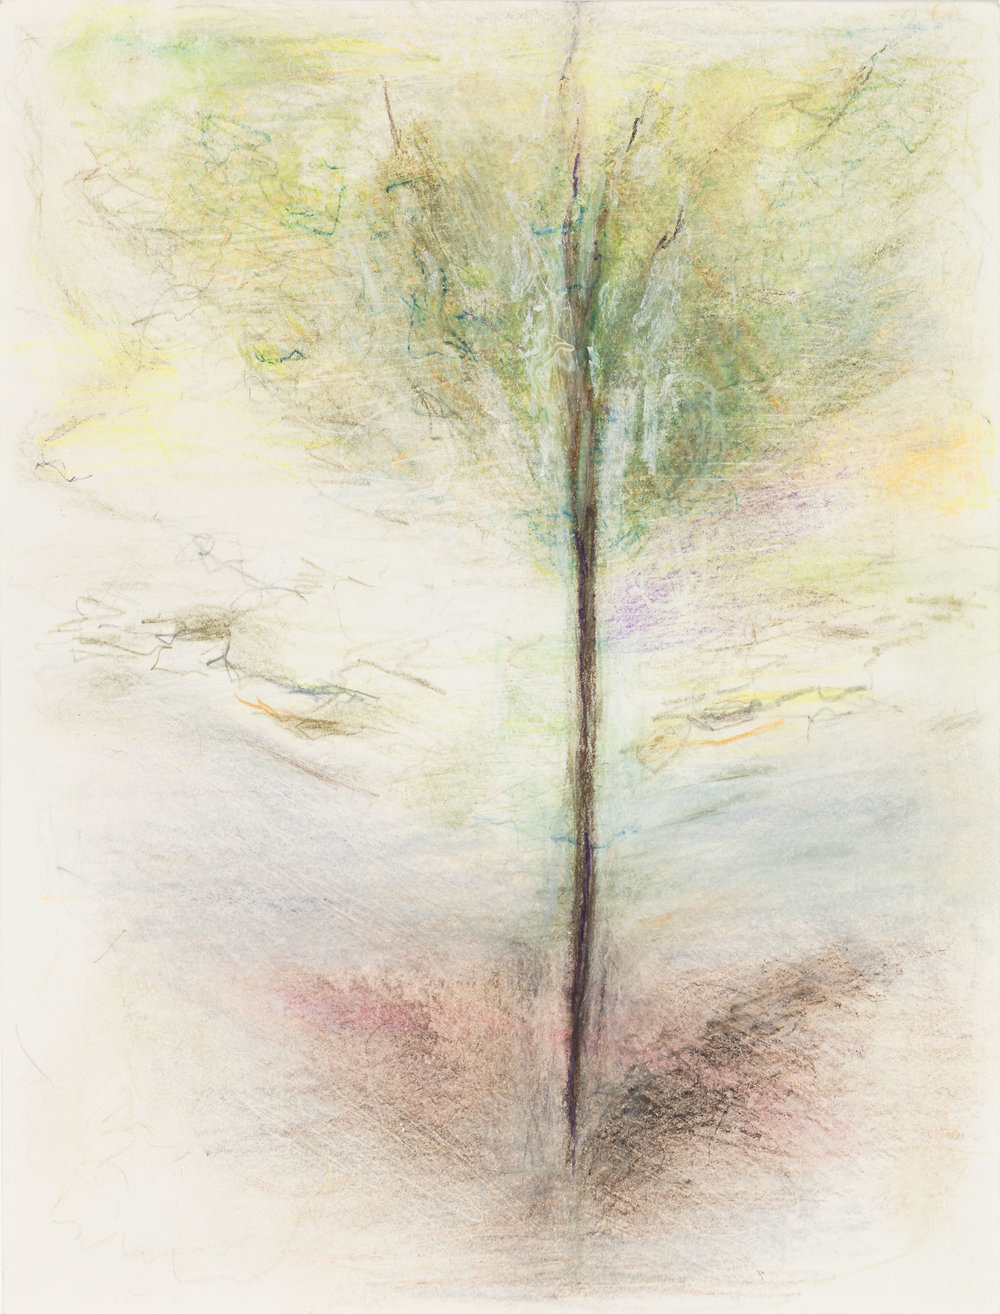 Hedda Sterne,    The Flying Tree , 1993, Colored pencil, pastel on paper, 12 in. x 9 in. (30.48 cm x 22.86 cm)